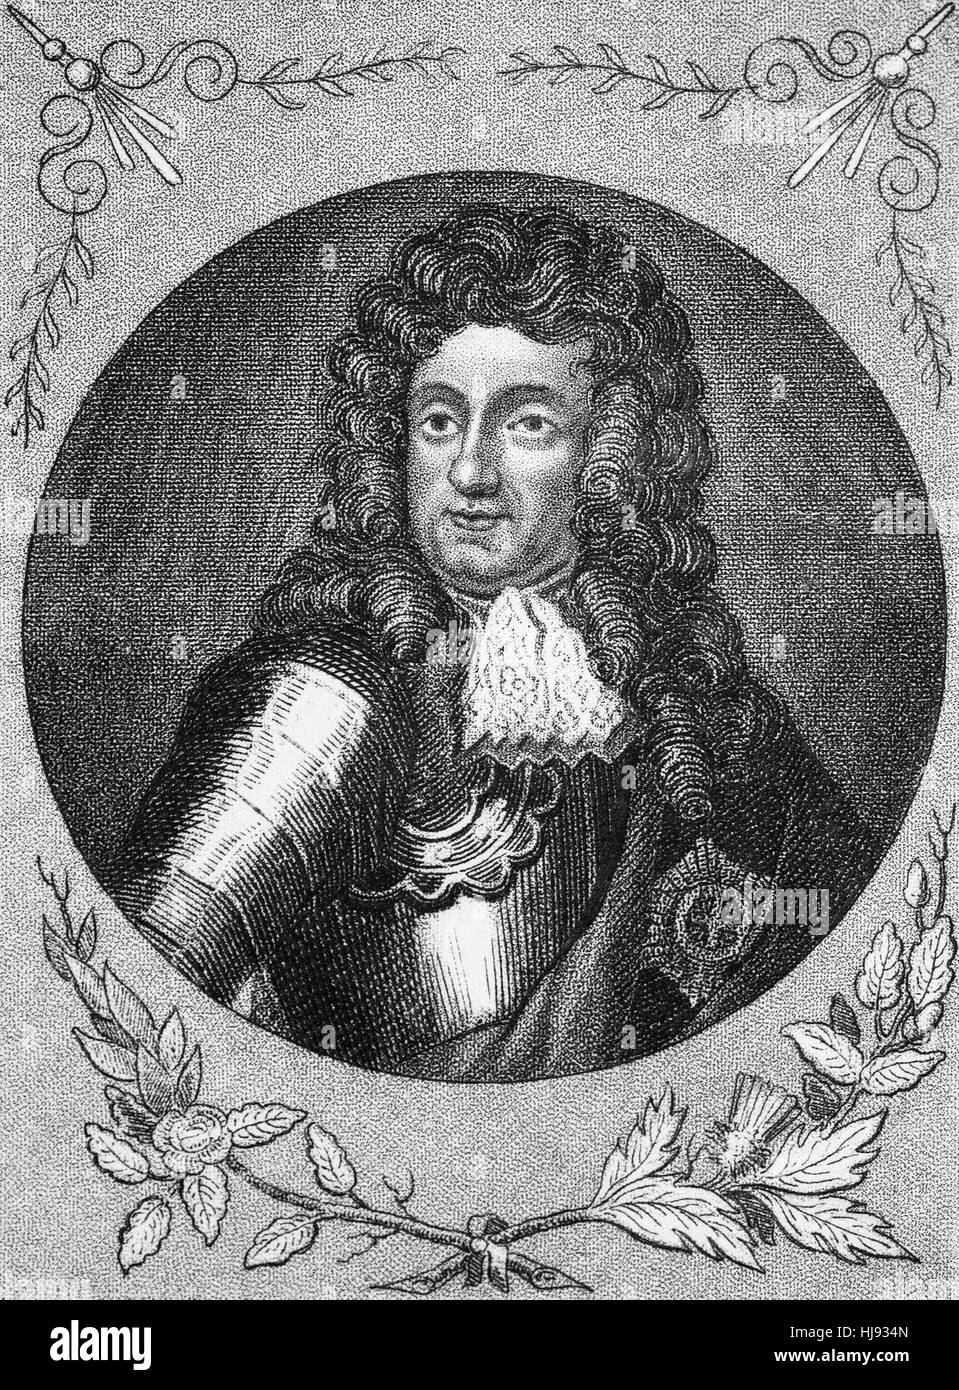 James II and VII (1633 - 1701) was King of England and Ireland as James II and King of Scotland as James VII, from - Stock Image